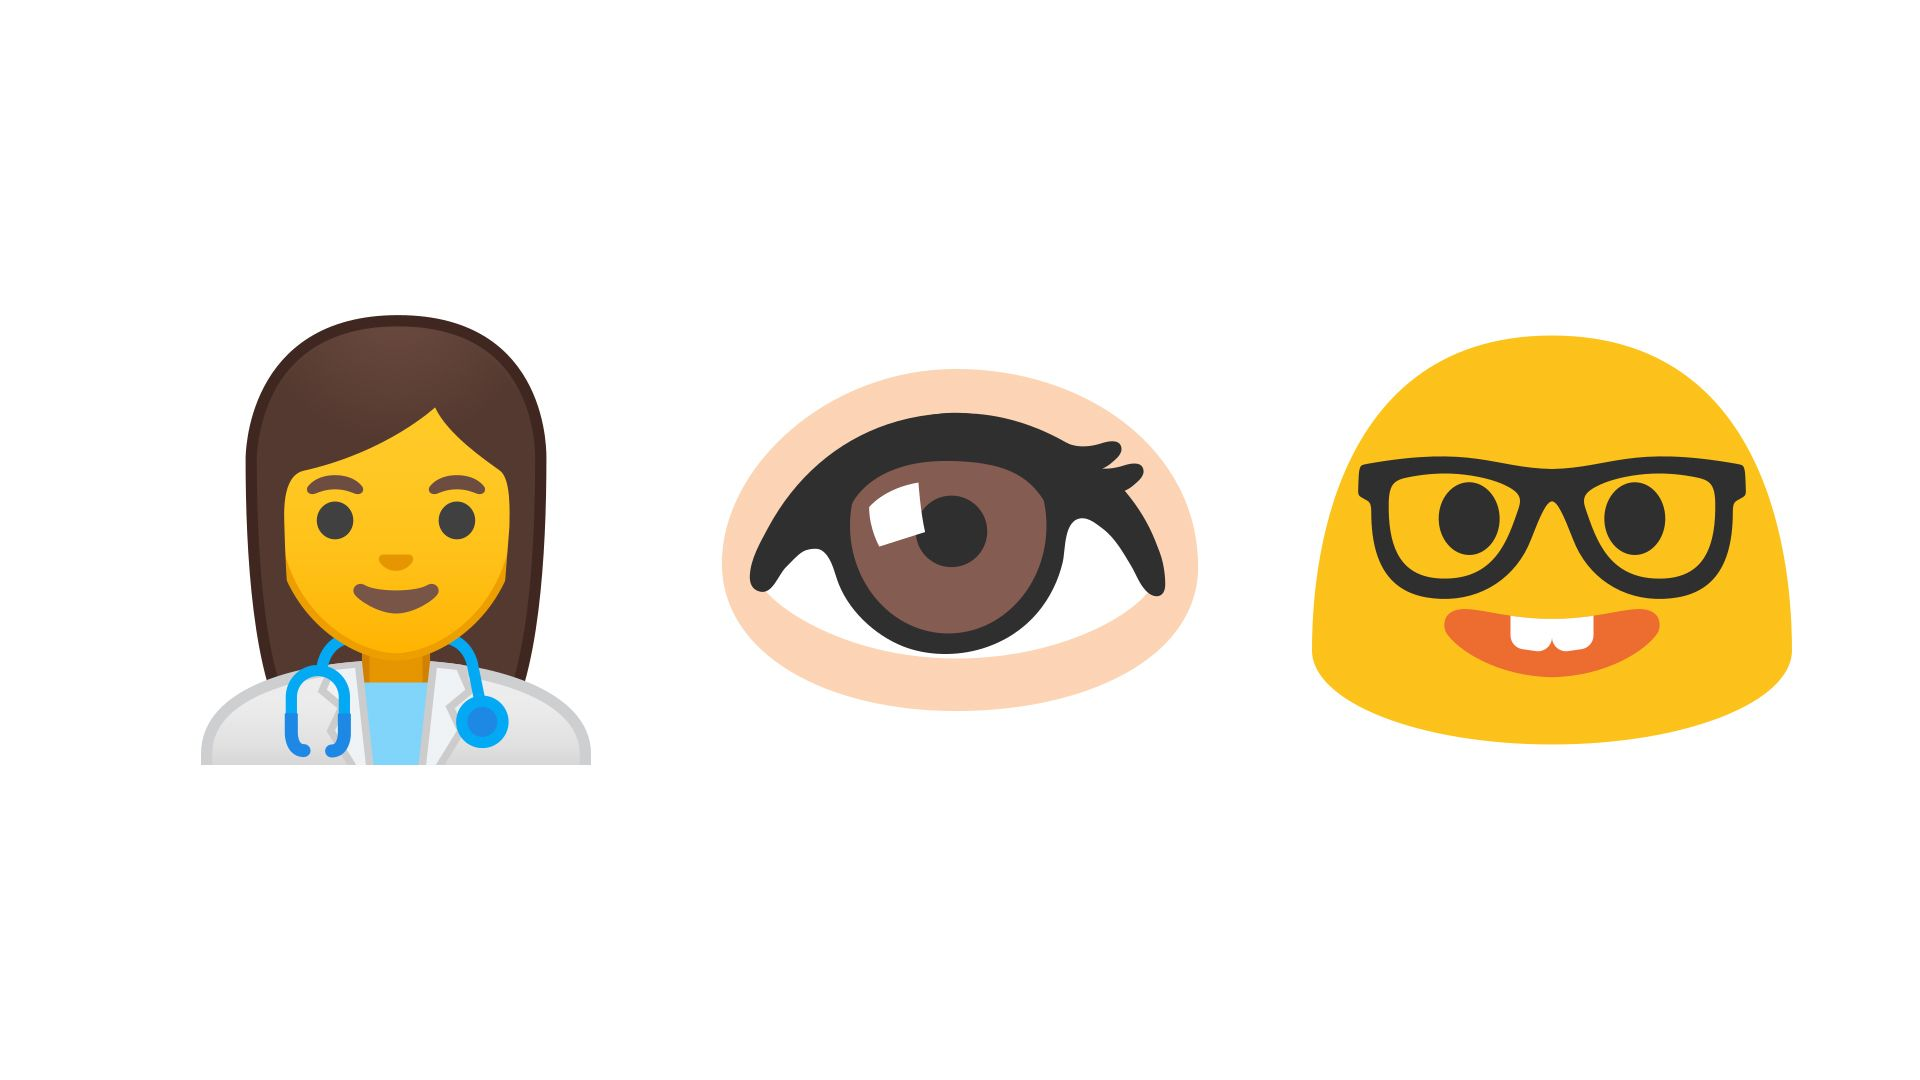 Howstuffworks: Can You Identify the Job From These Emojis?